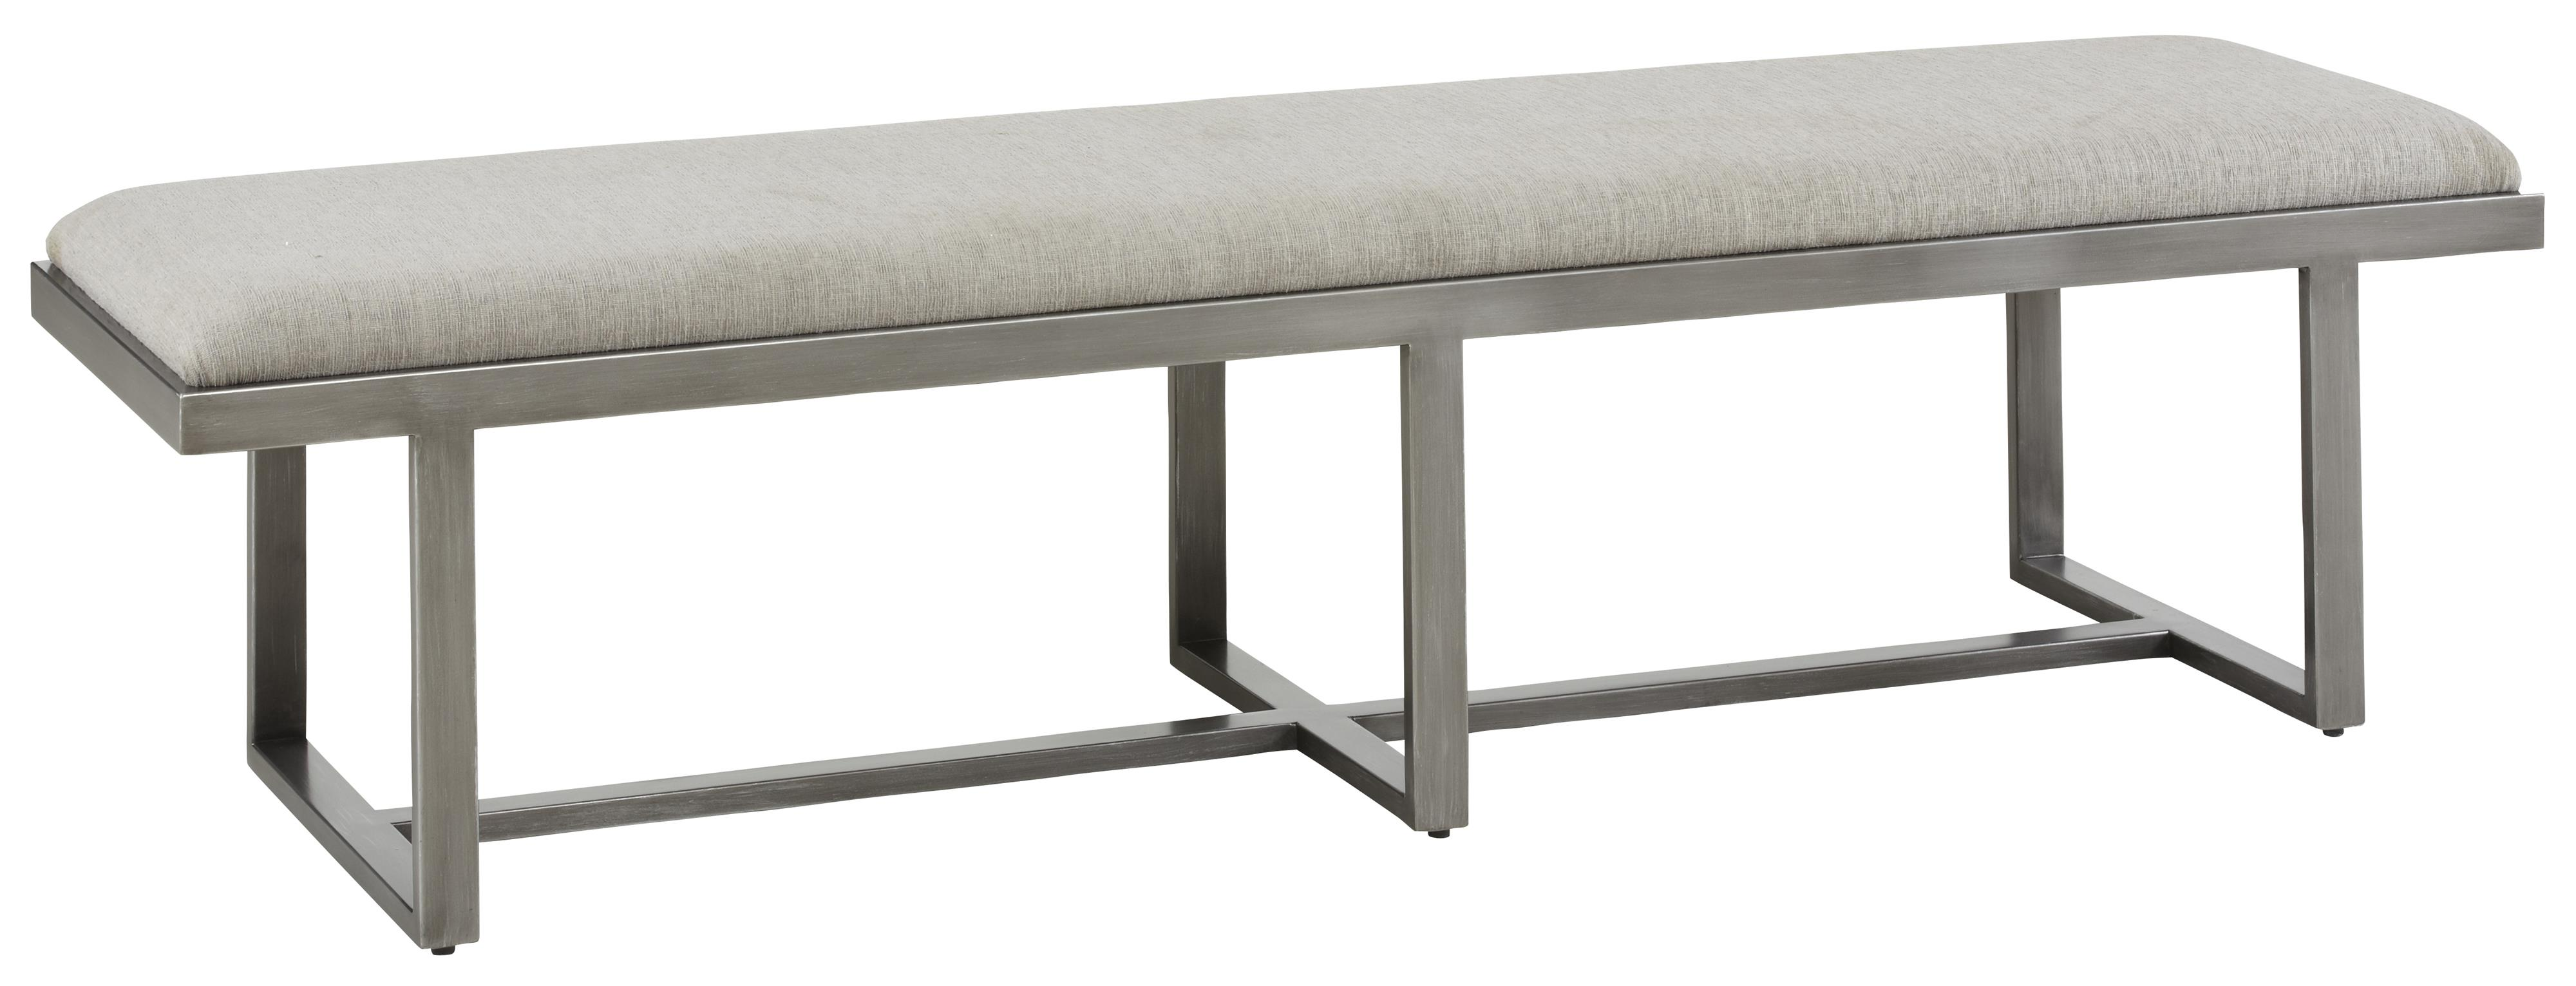 Metal Art Furniture - By a r t furniture inc narrow silver lake metal bench upholstered cocktail ottoman